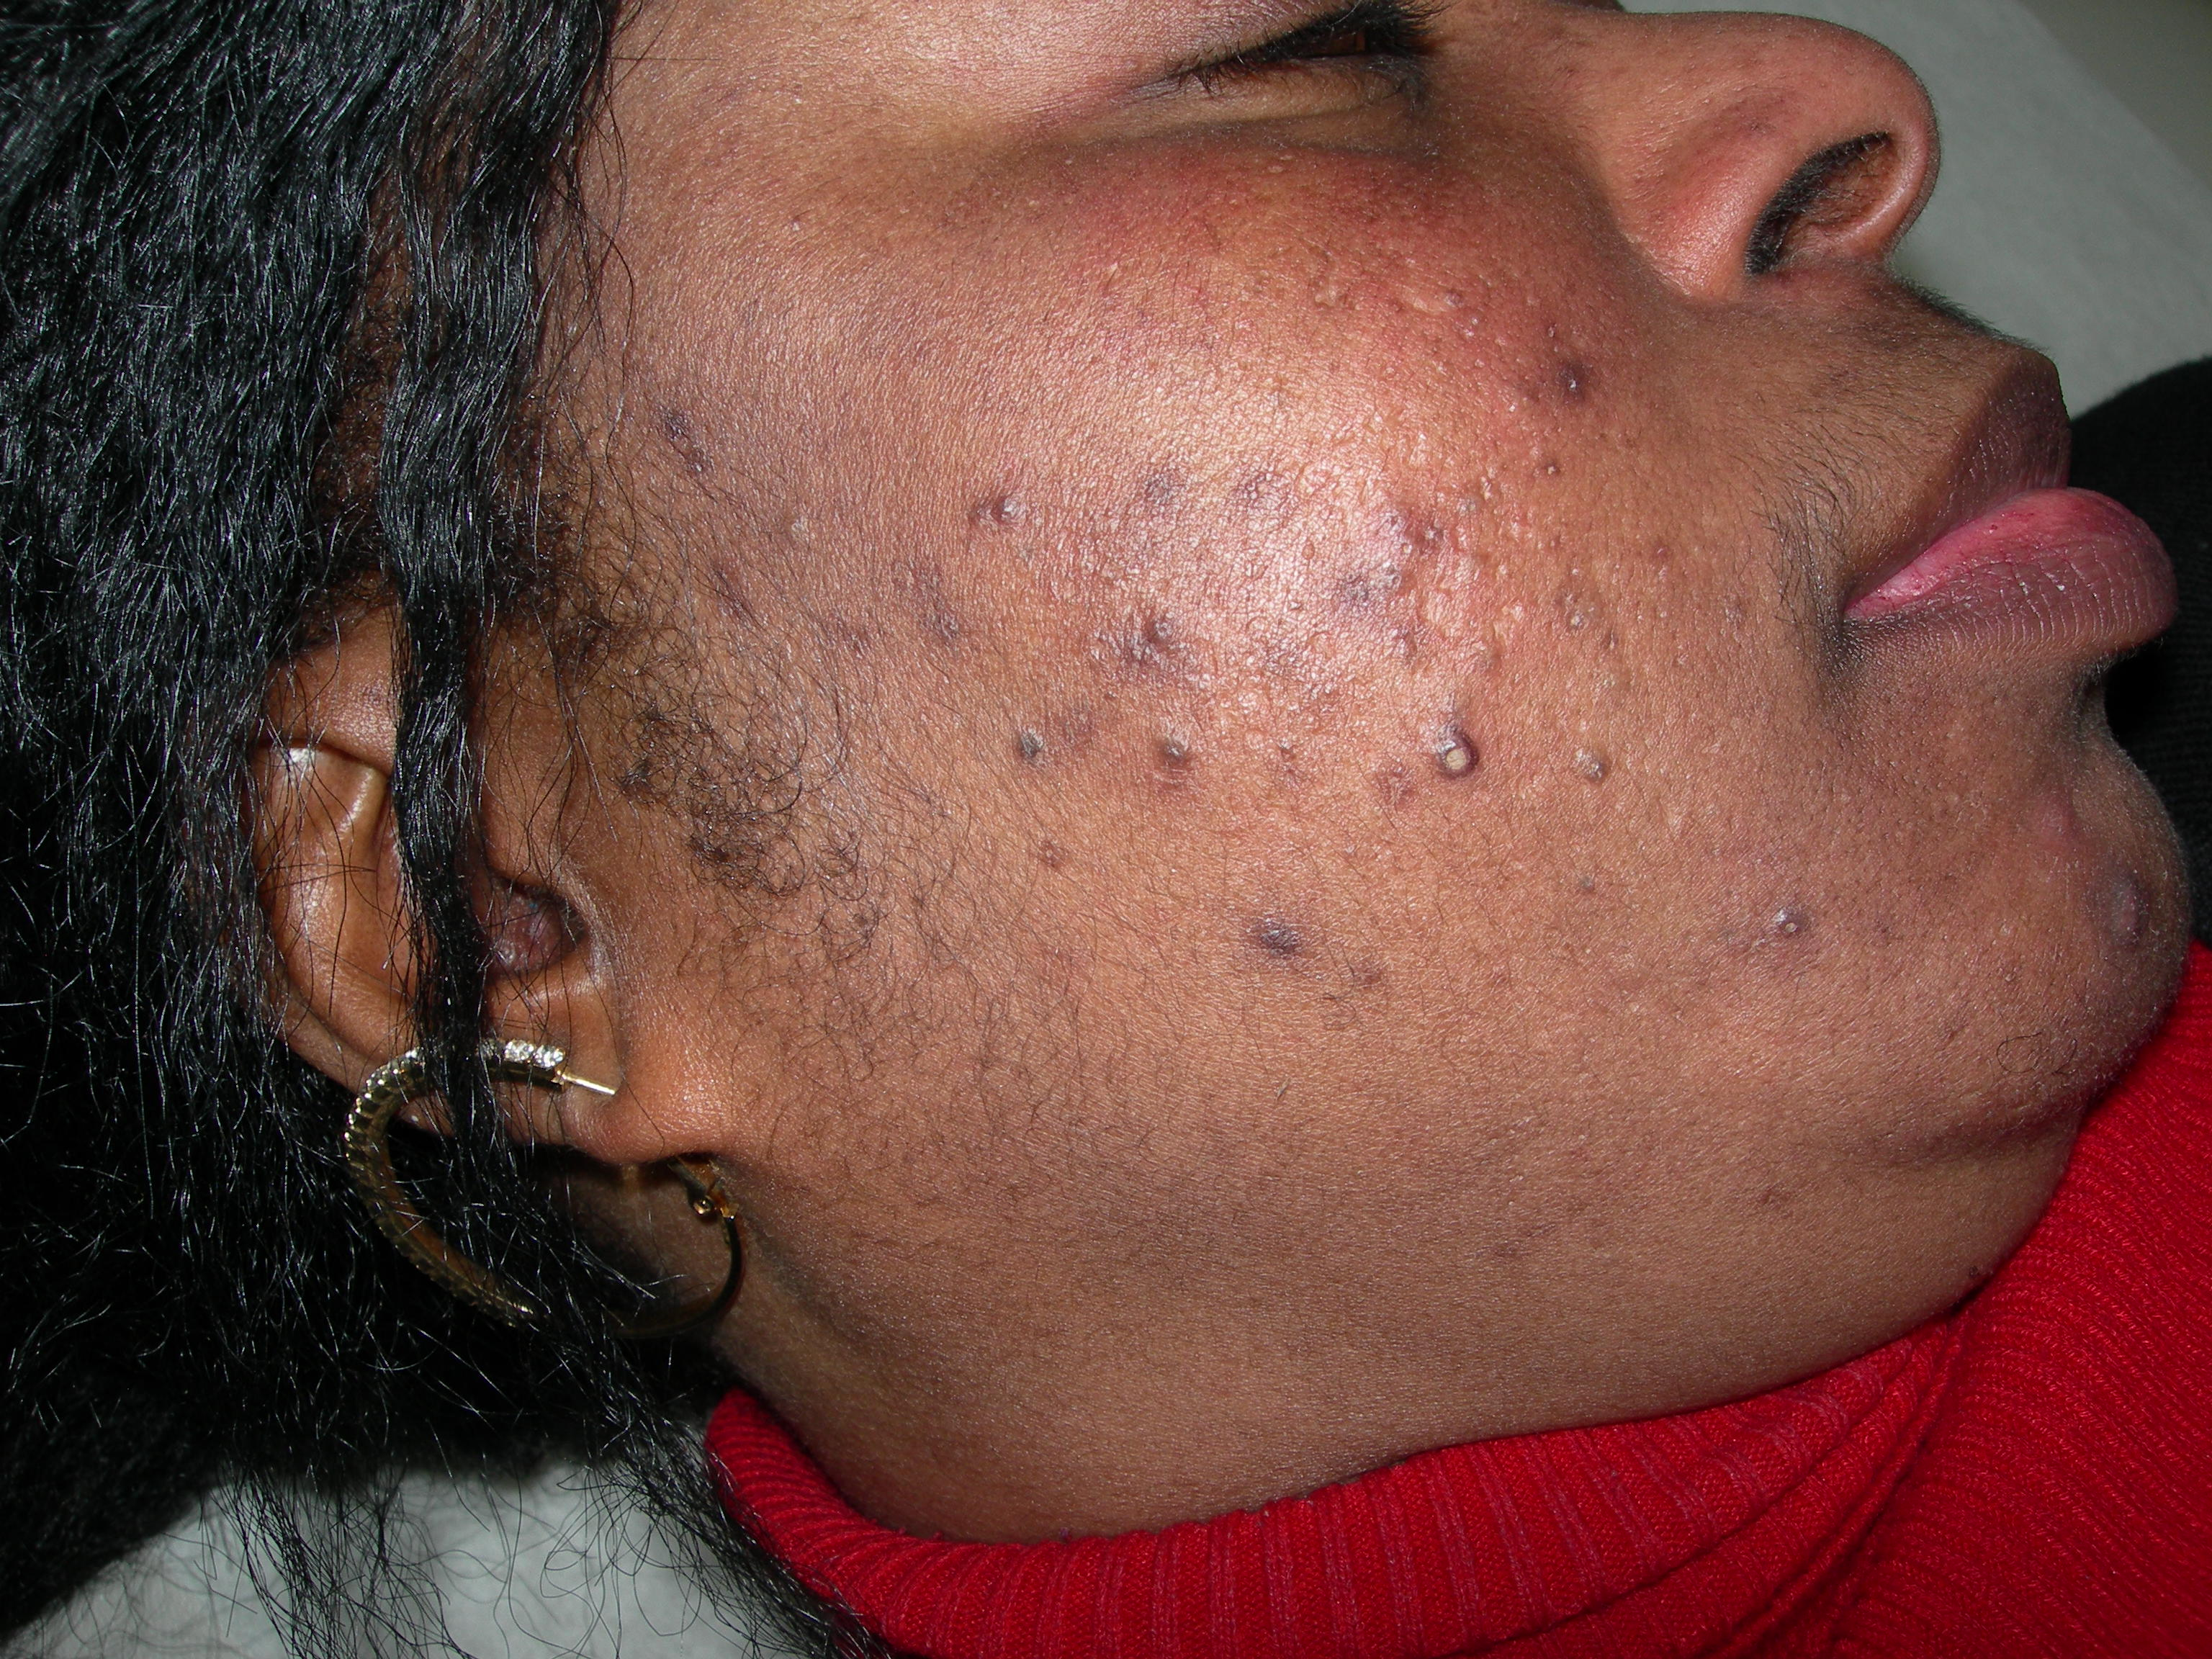 How To Get Rid Of Pimples Kamdora